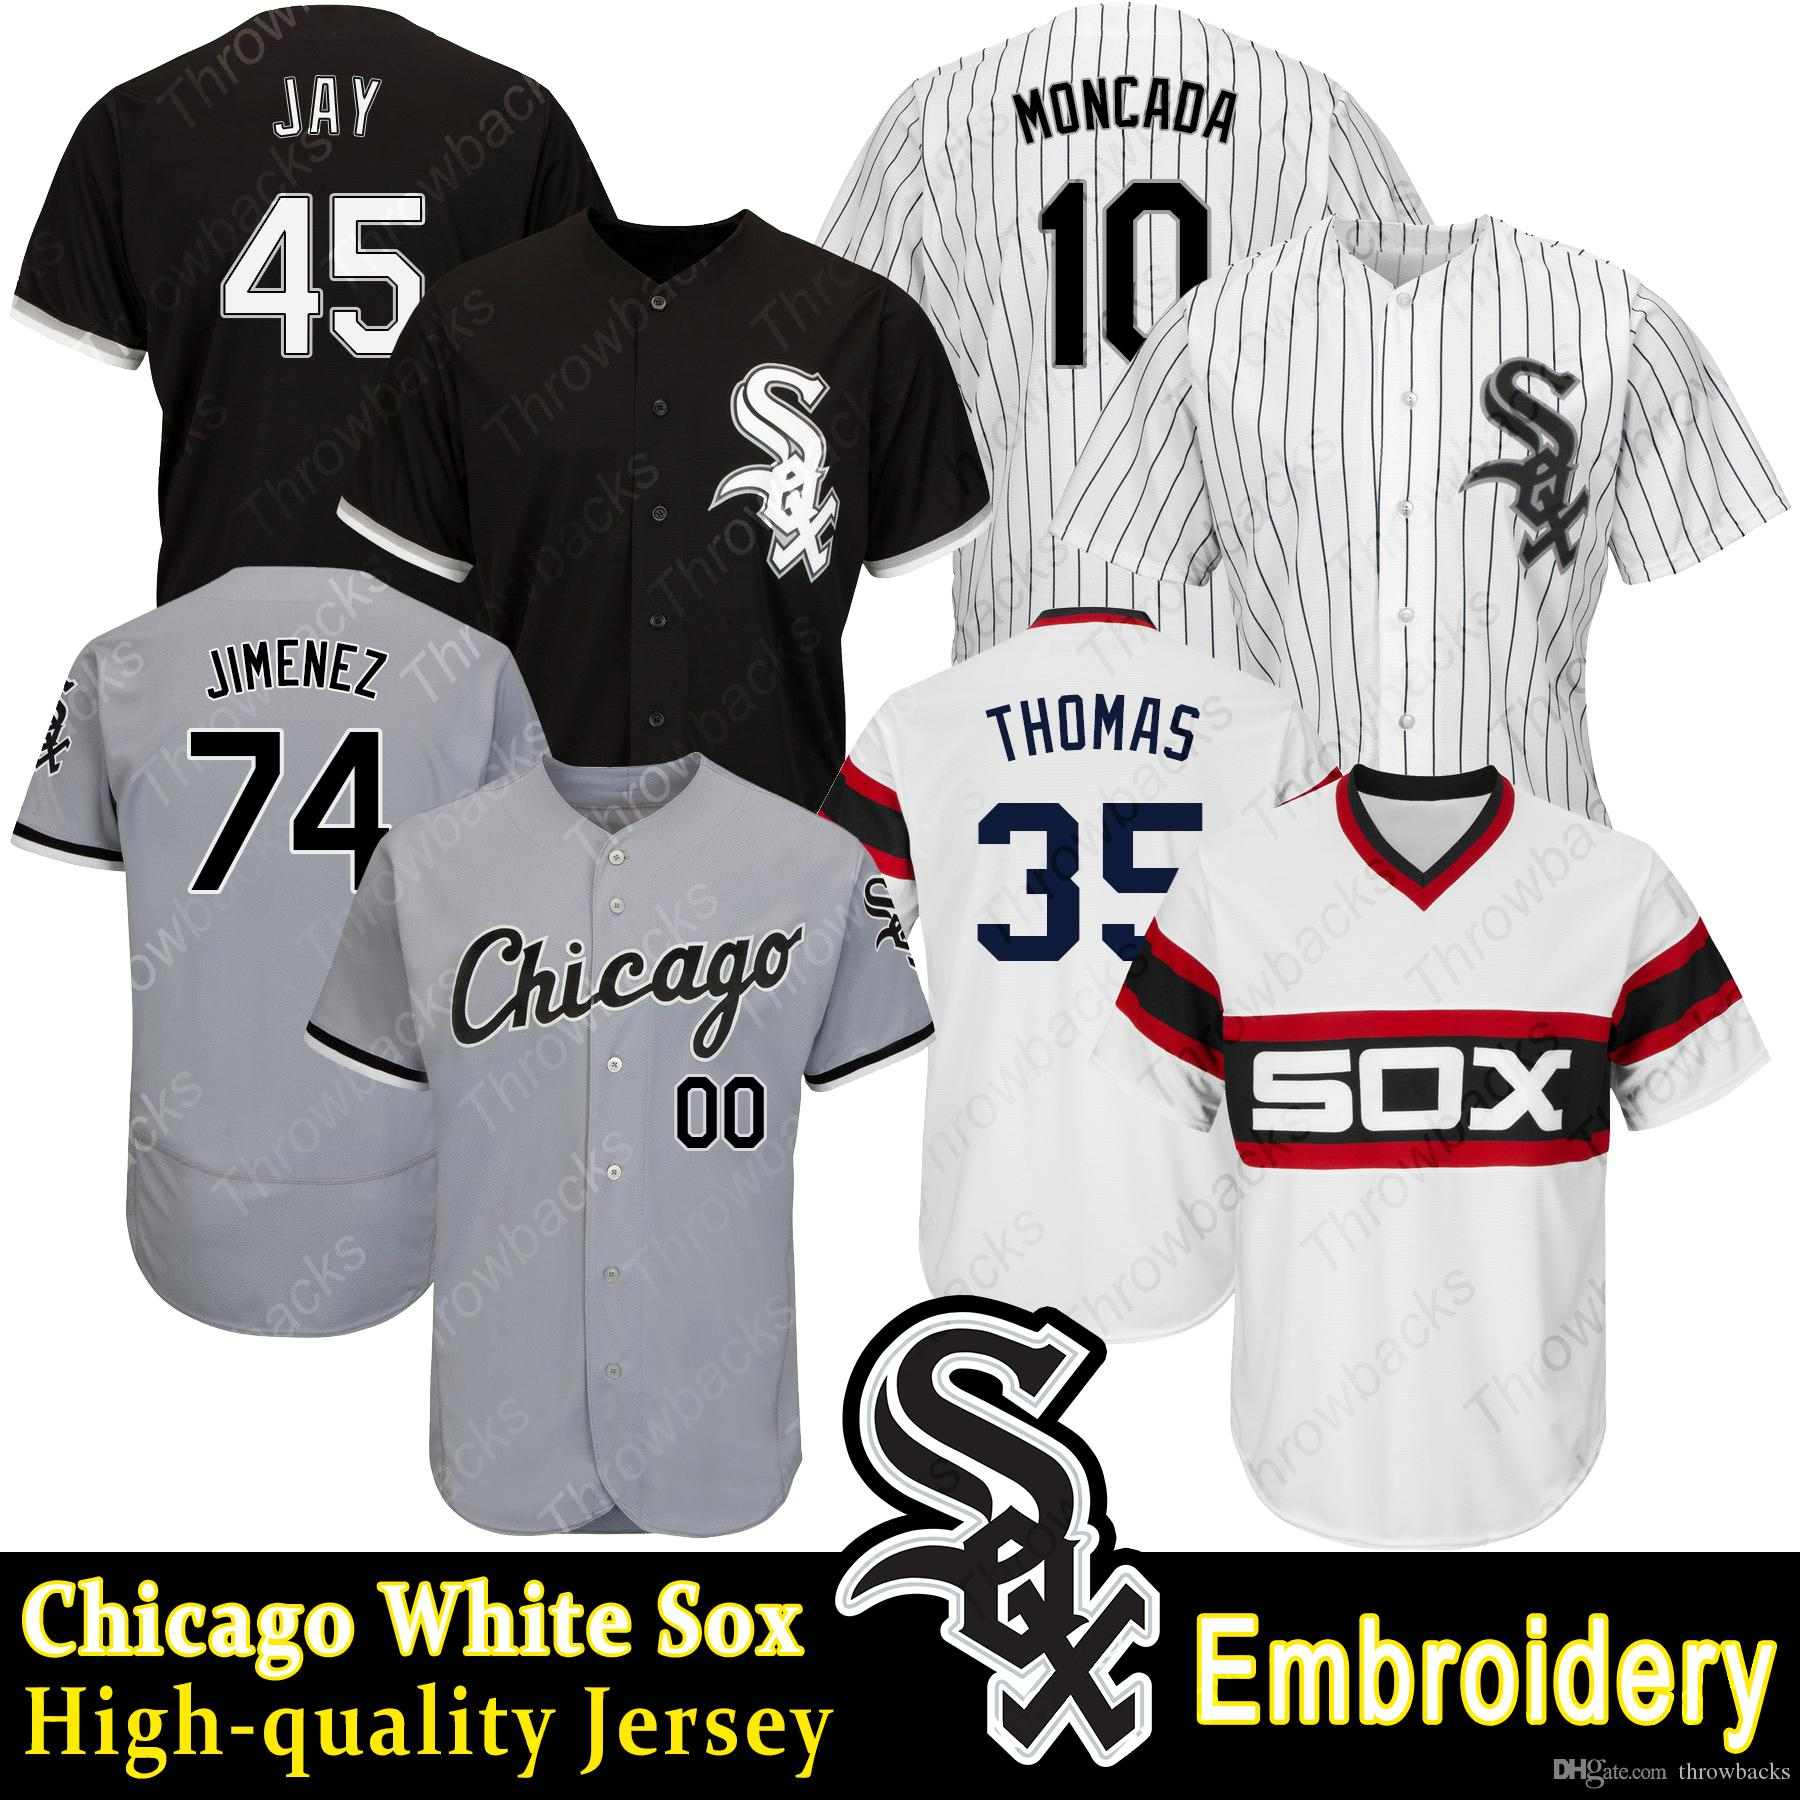 ec4bd5137 2019 Chicago White Sox Jersey Jon Jay Eloy Jimenez Frank Thomas Yoan  Moncada Cool Base Baseball Jerseys From Throwbacks